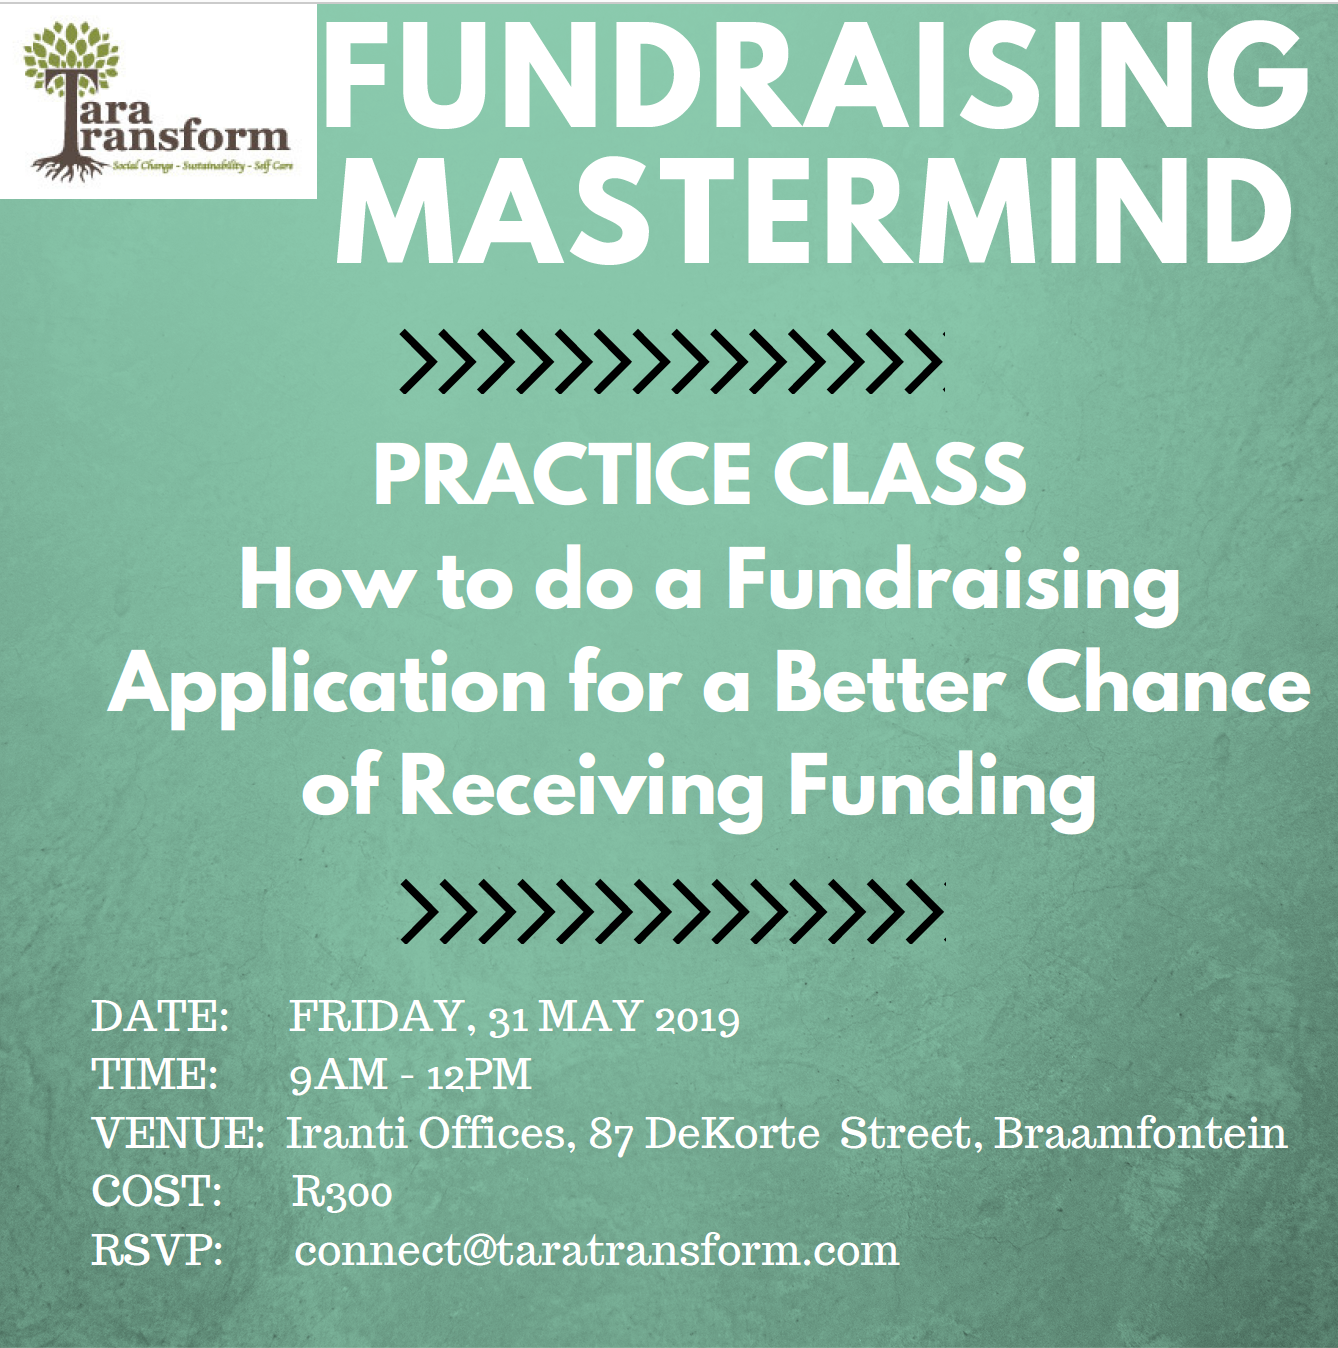 Fundraising Mastermind short format - Tara Transform